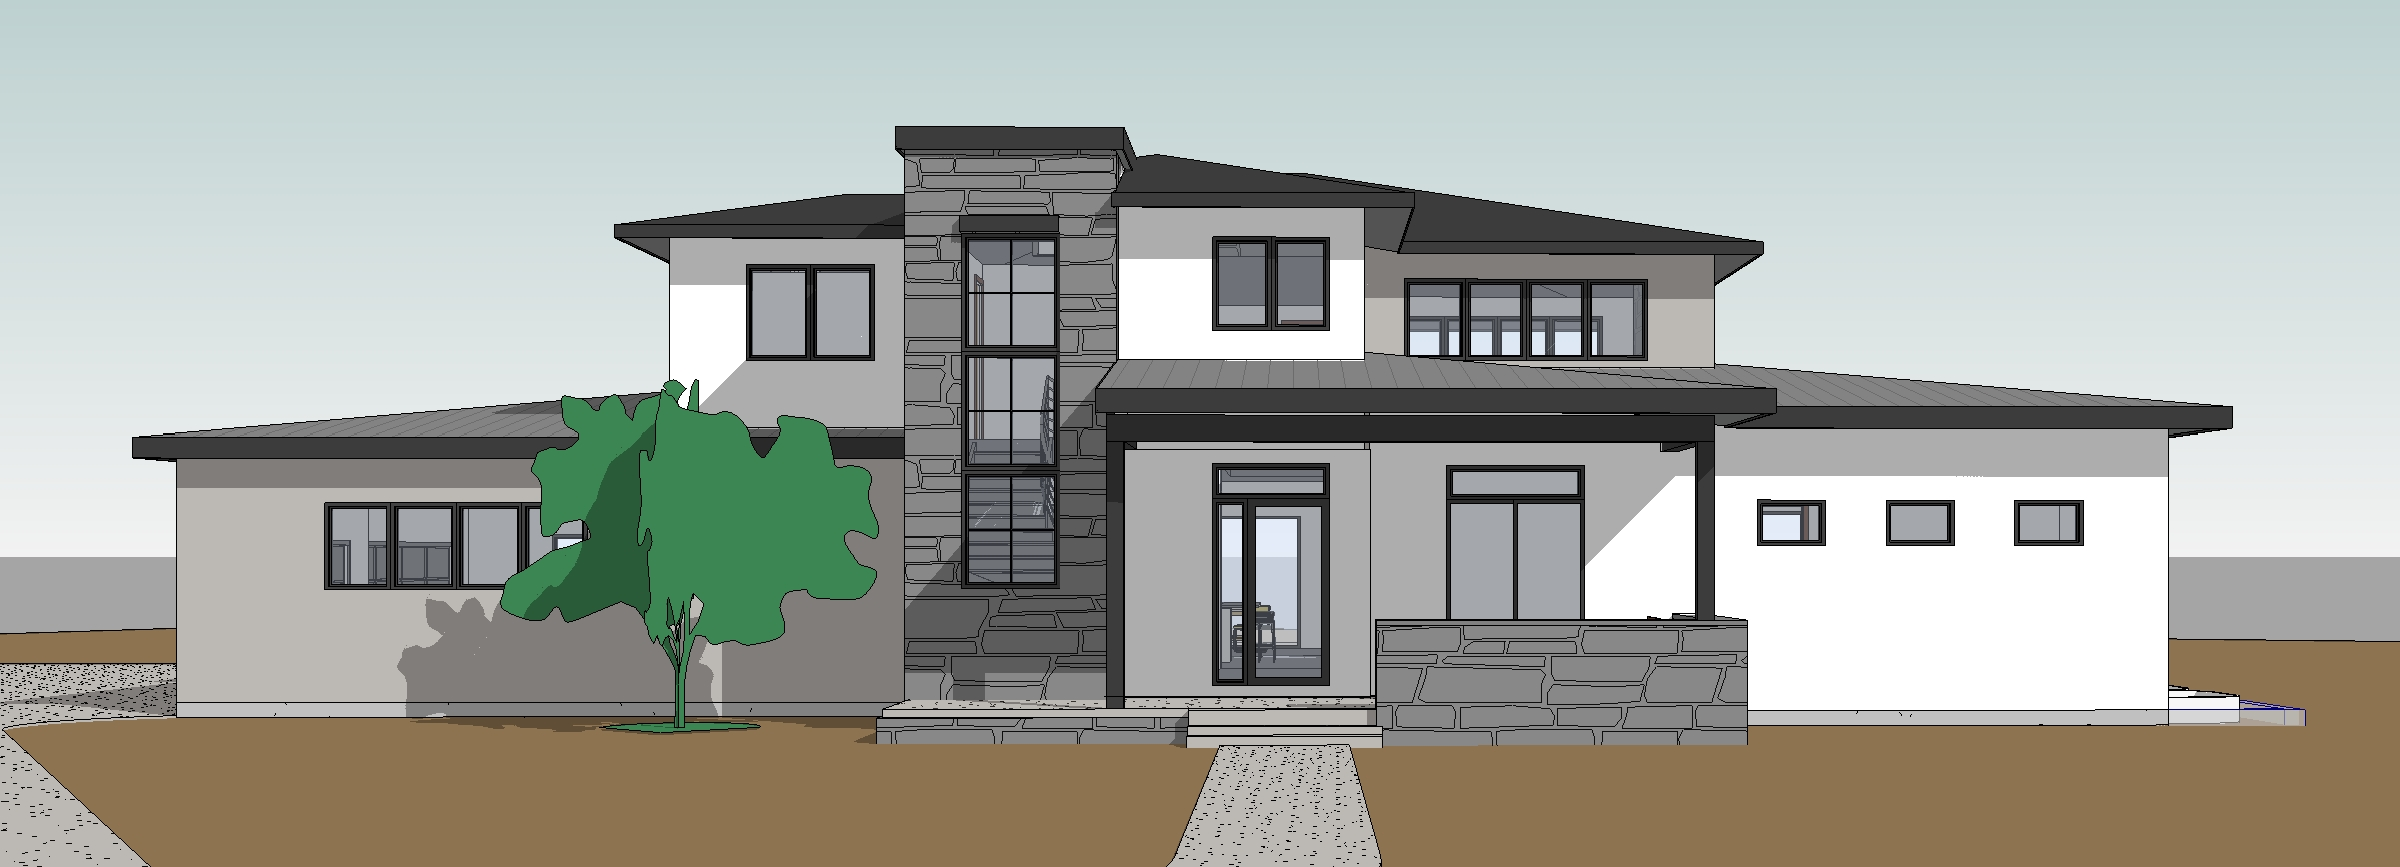 Rutherford3 - 3D View - FRONT.jpg